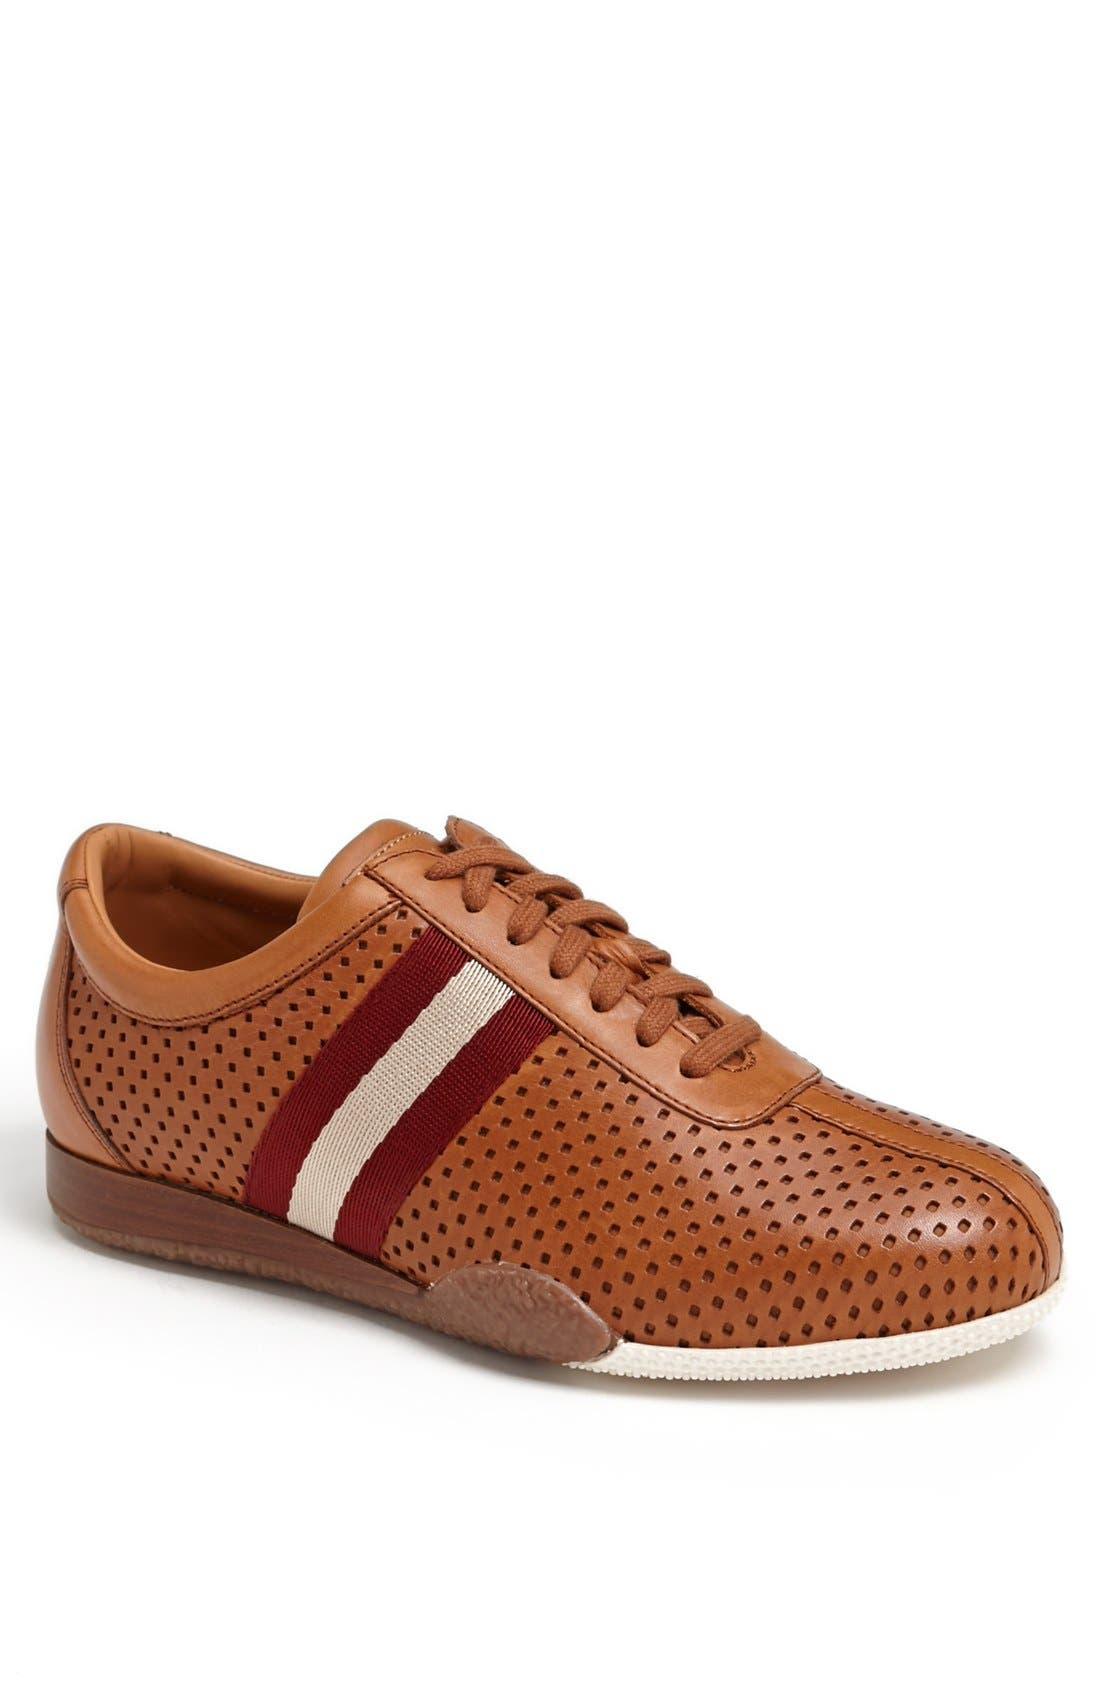 Main Image - Bally 'Freenew' Perforated Leather Sneaker